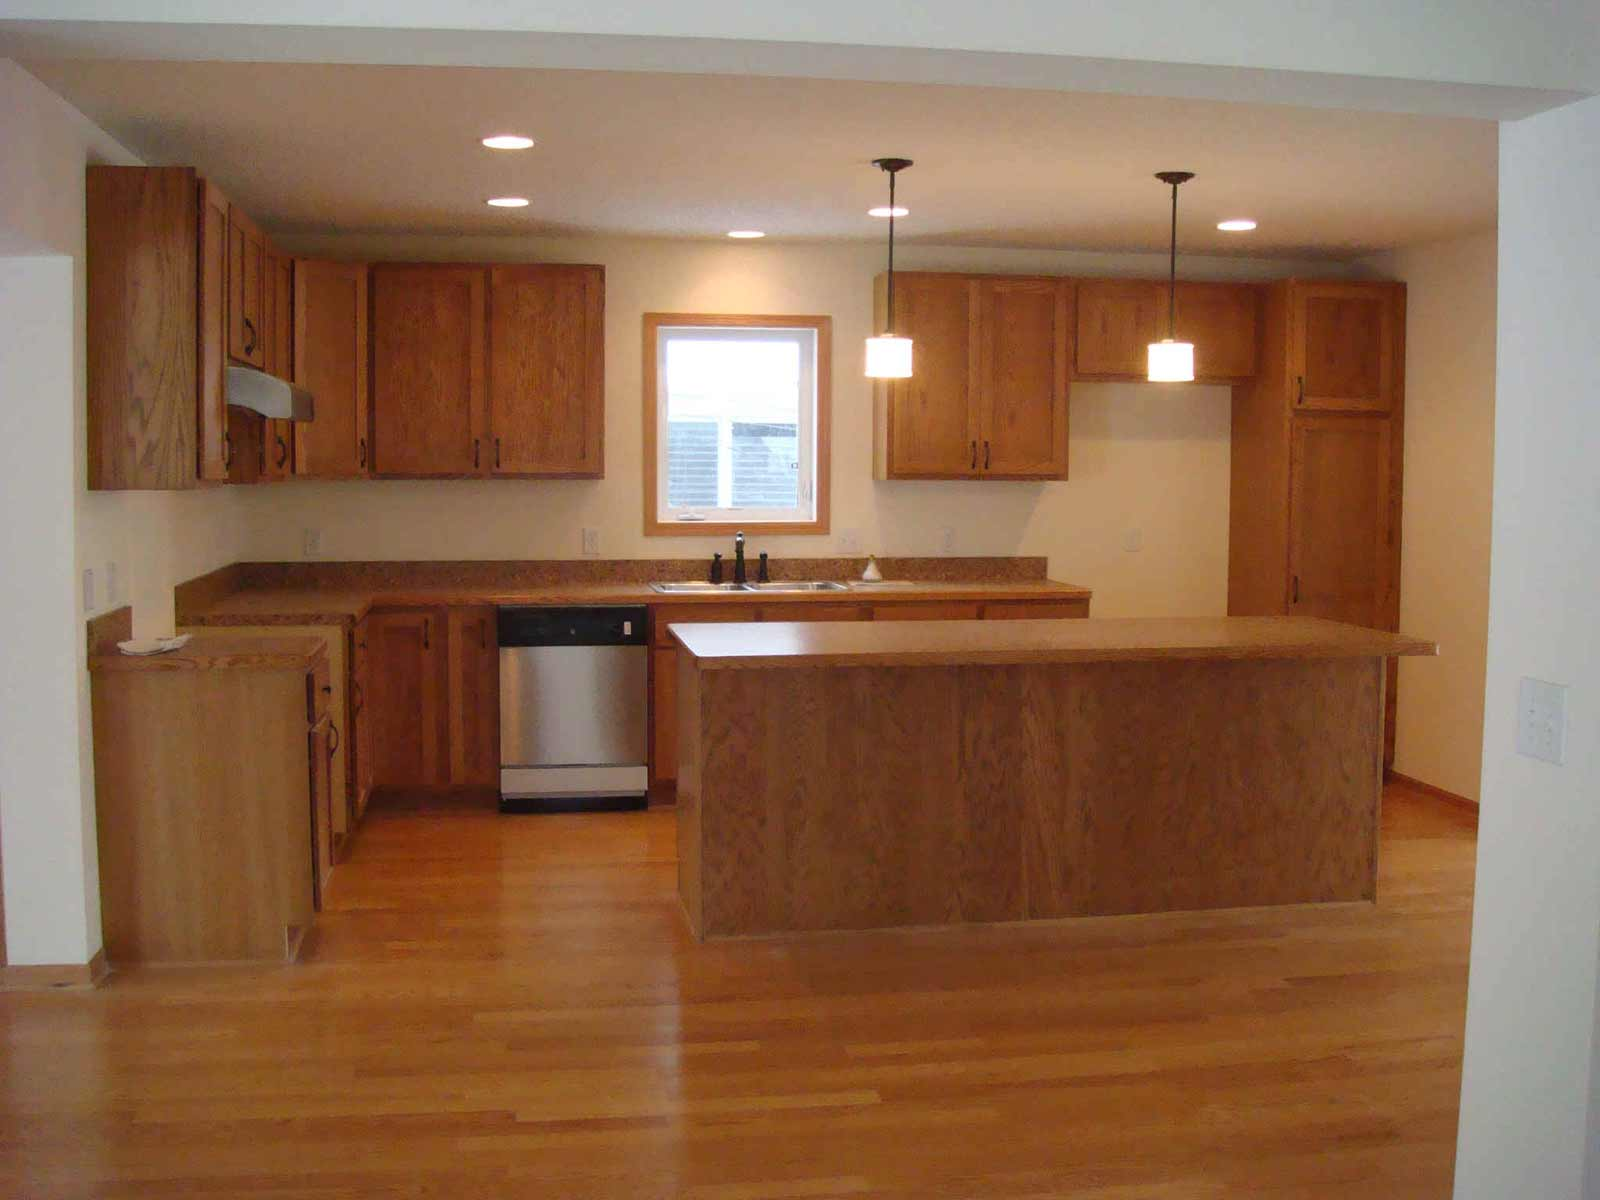 Laminate wood Flooring for Kitchen Floors